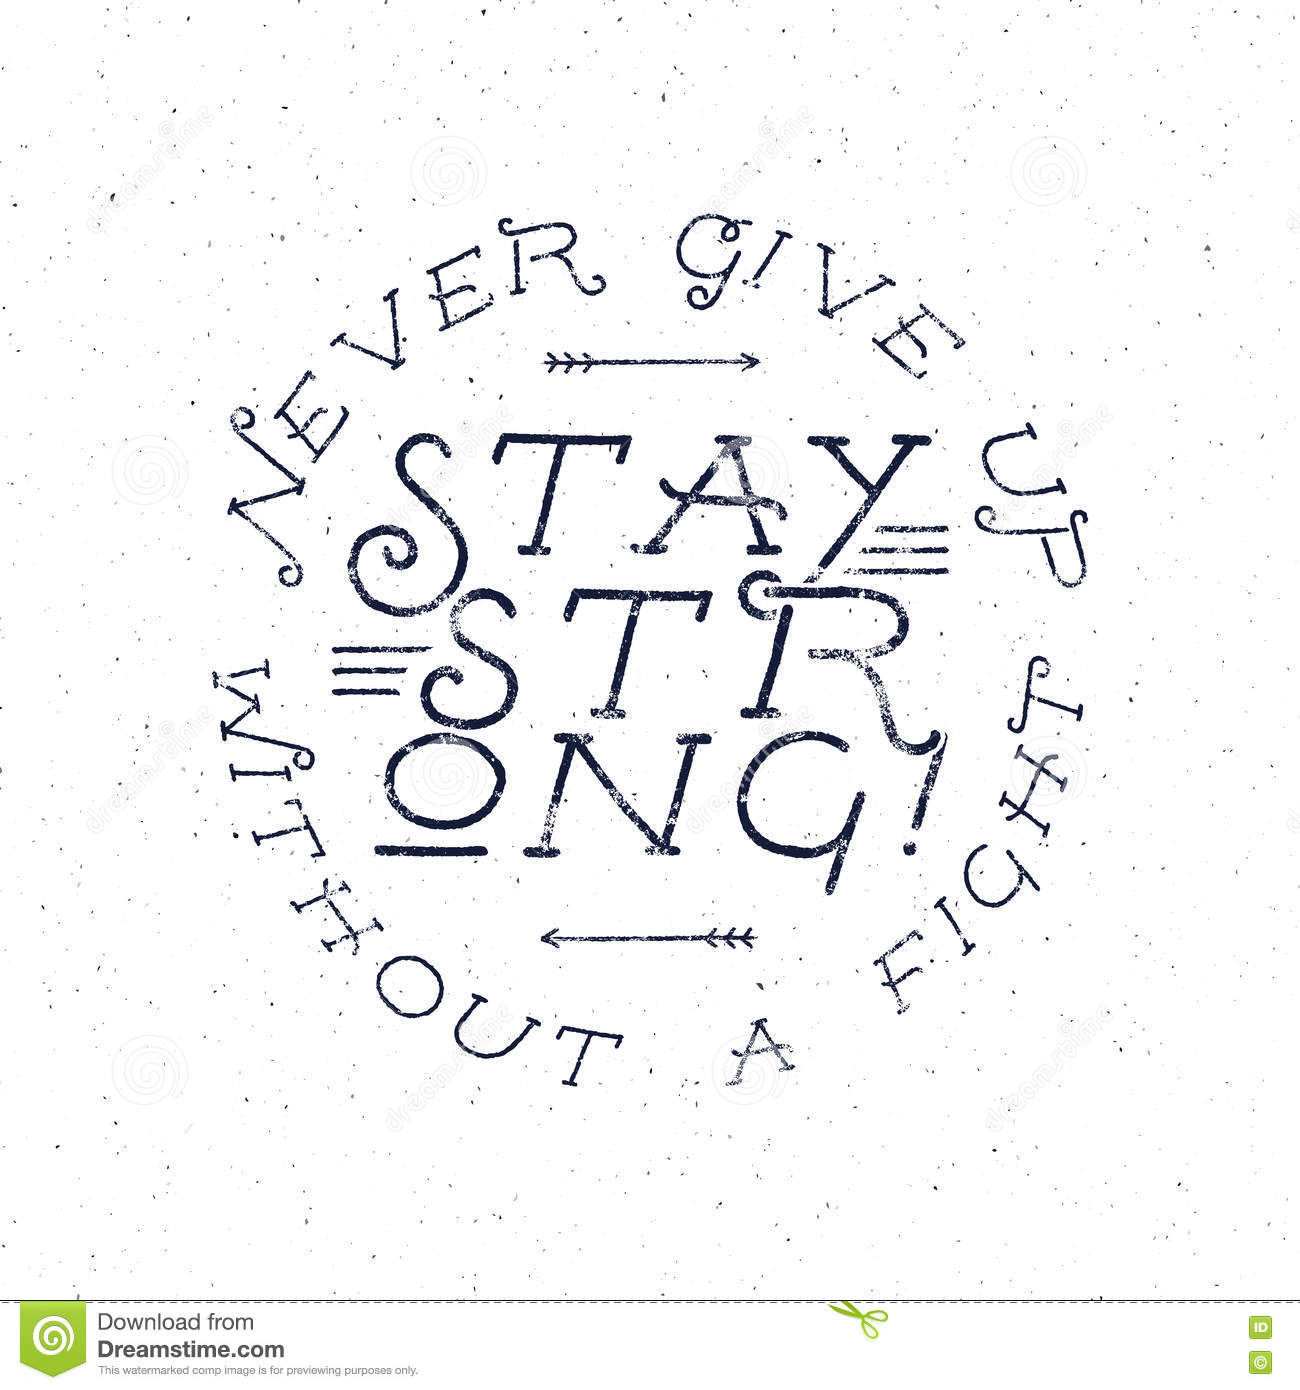 d2a270488f Inspirational chalk typography quote poster. Motivation text - Never Give  up without a fight, stay strong with grunge effects and retro sun burst.